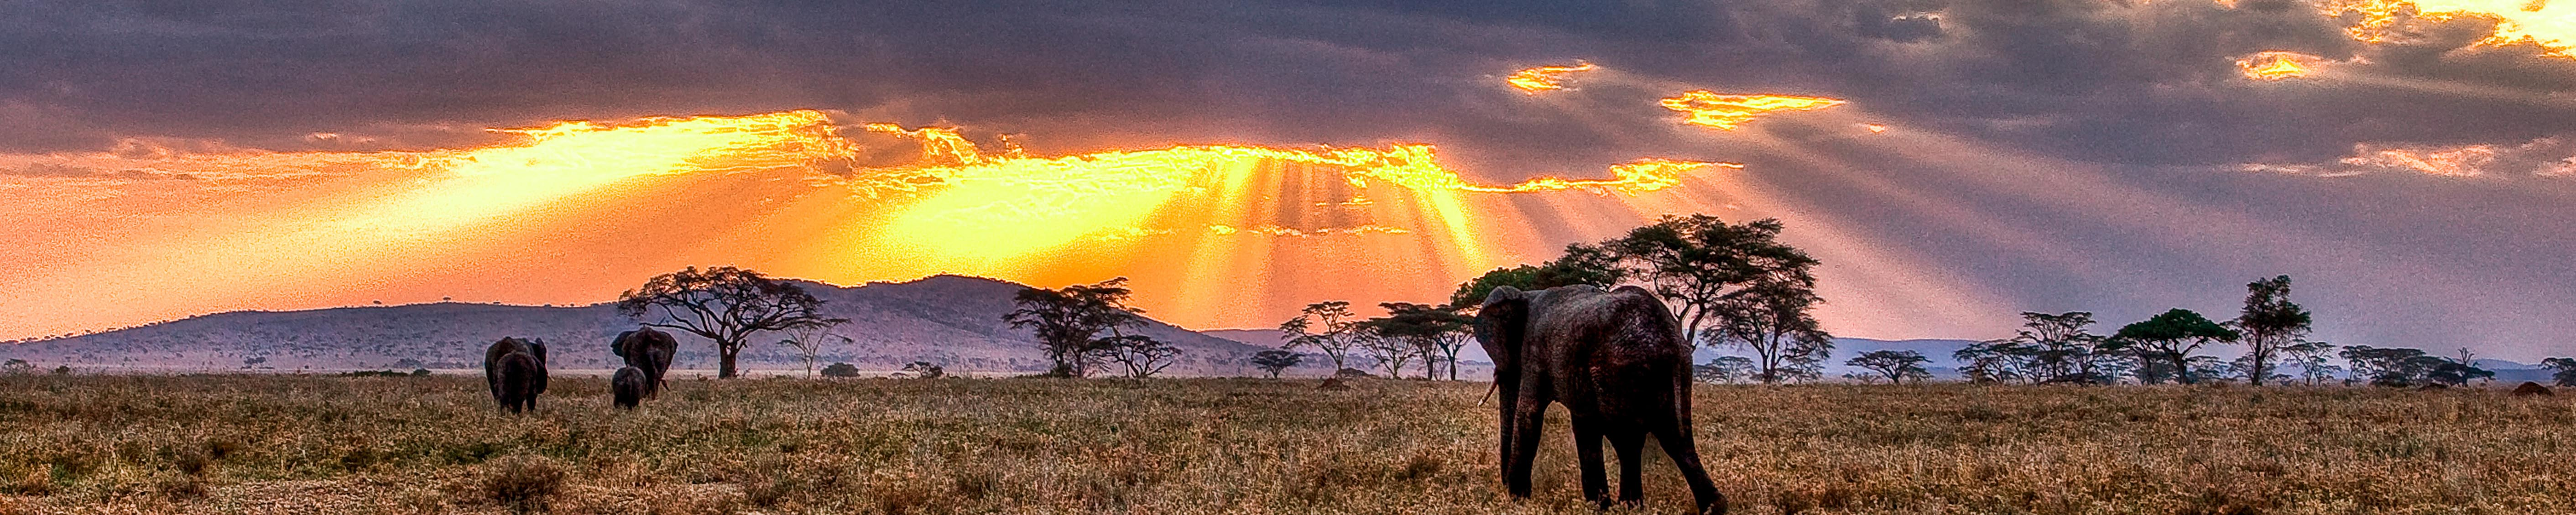 Safari with Elephants